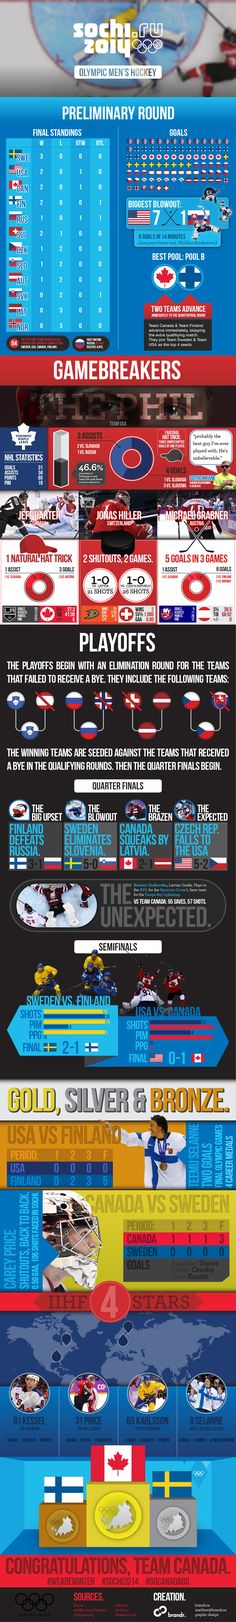 Olympic Hockey infographic sums up tournament - FanSided - Sports News, Entertainment, Lifestyle & Technology - 240+ Sites